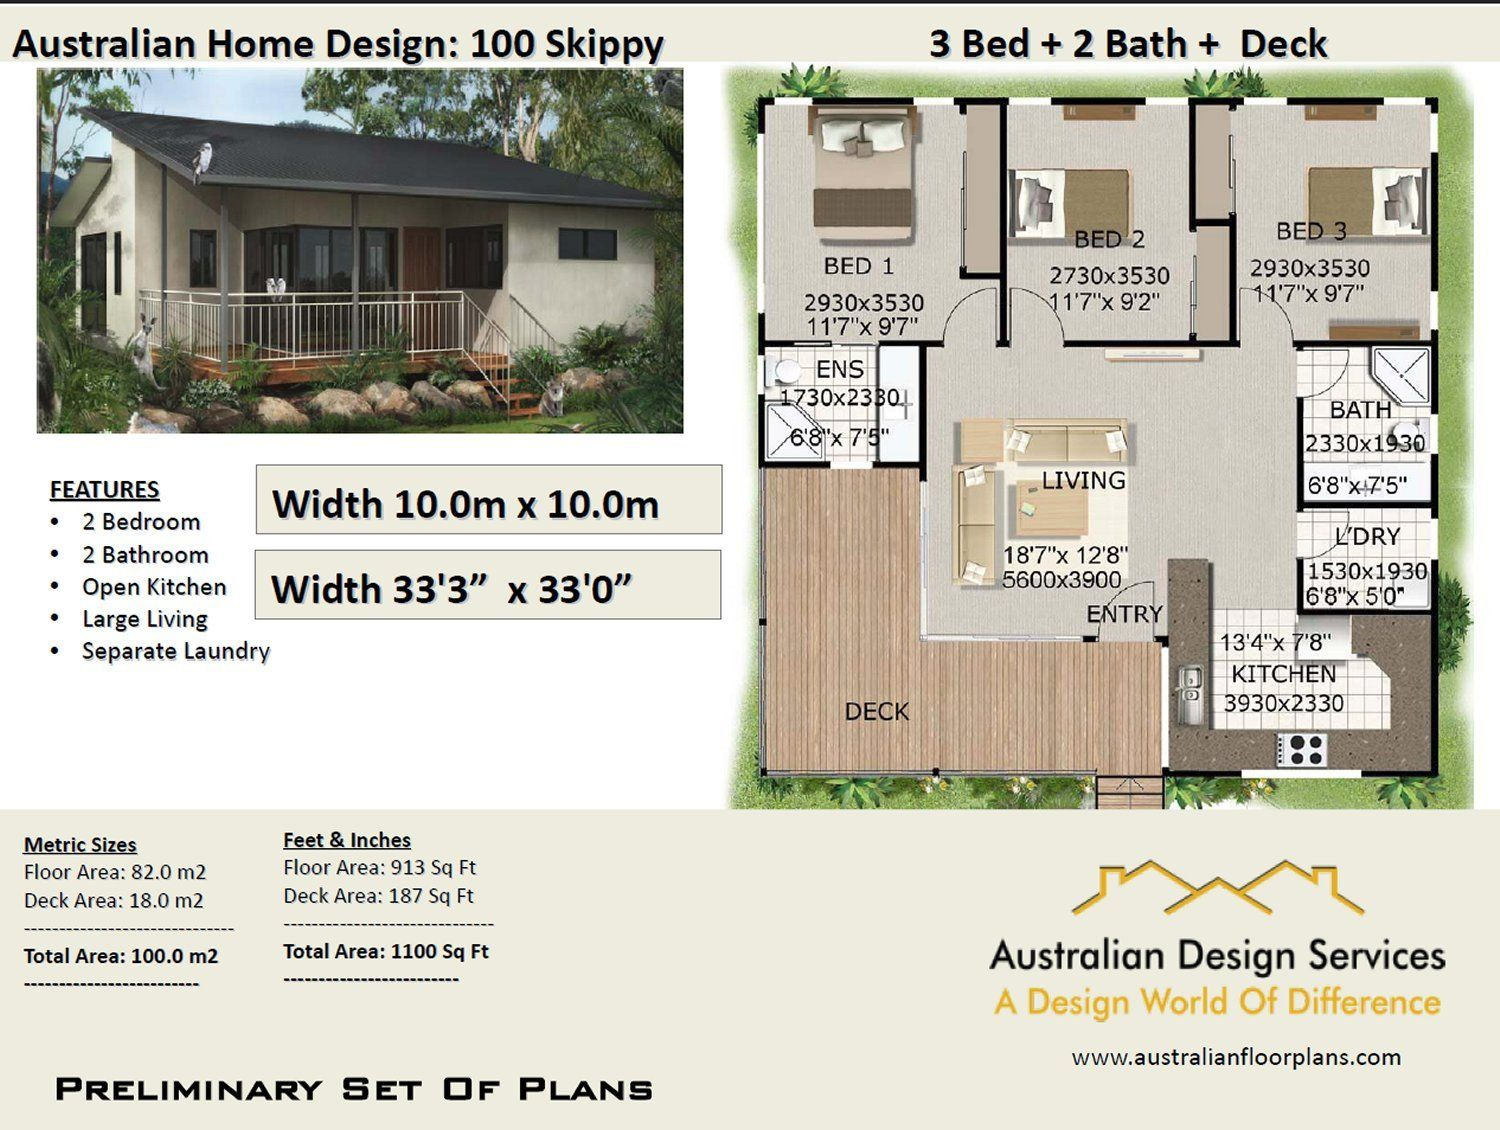 3 Bedroom Country Style House Plan Australia 1100 Sq Foot Etsy House Plans Australia Country Style House Plans House Plans For Sale